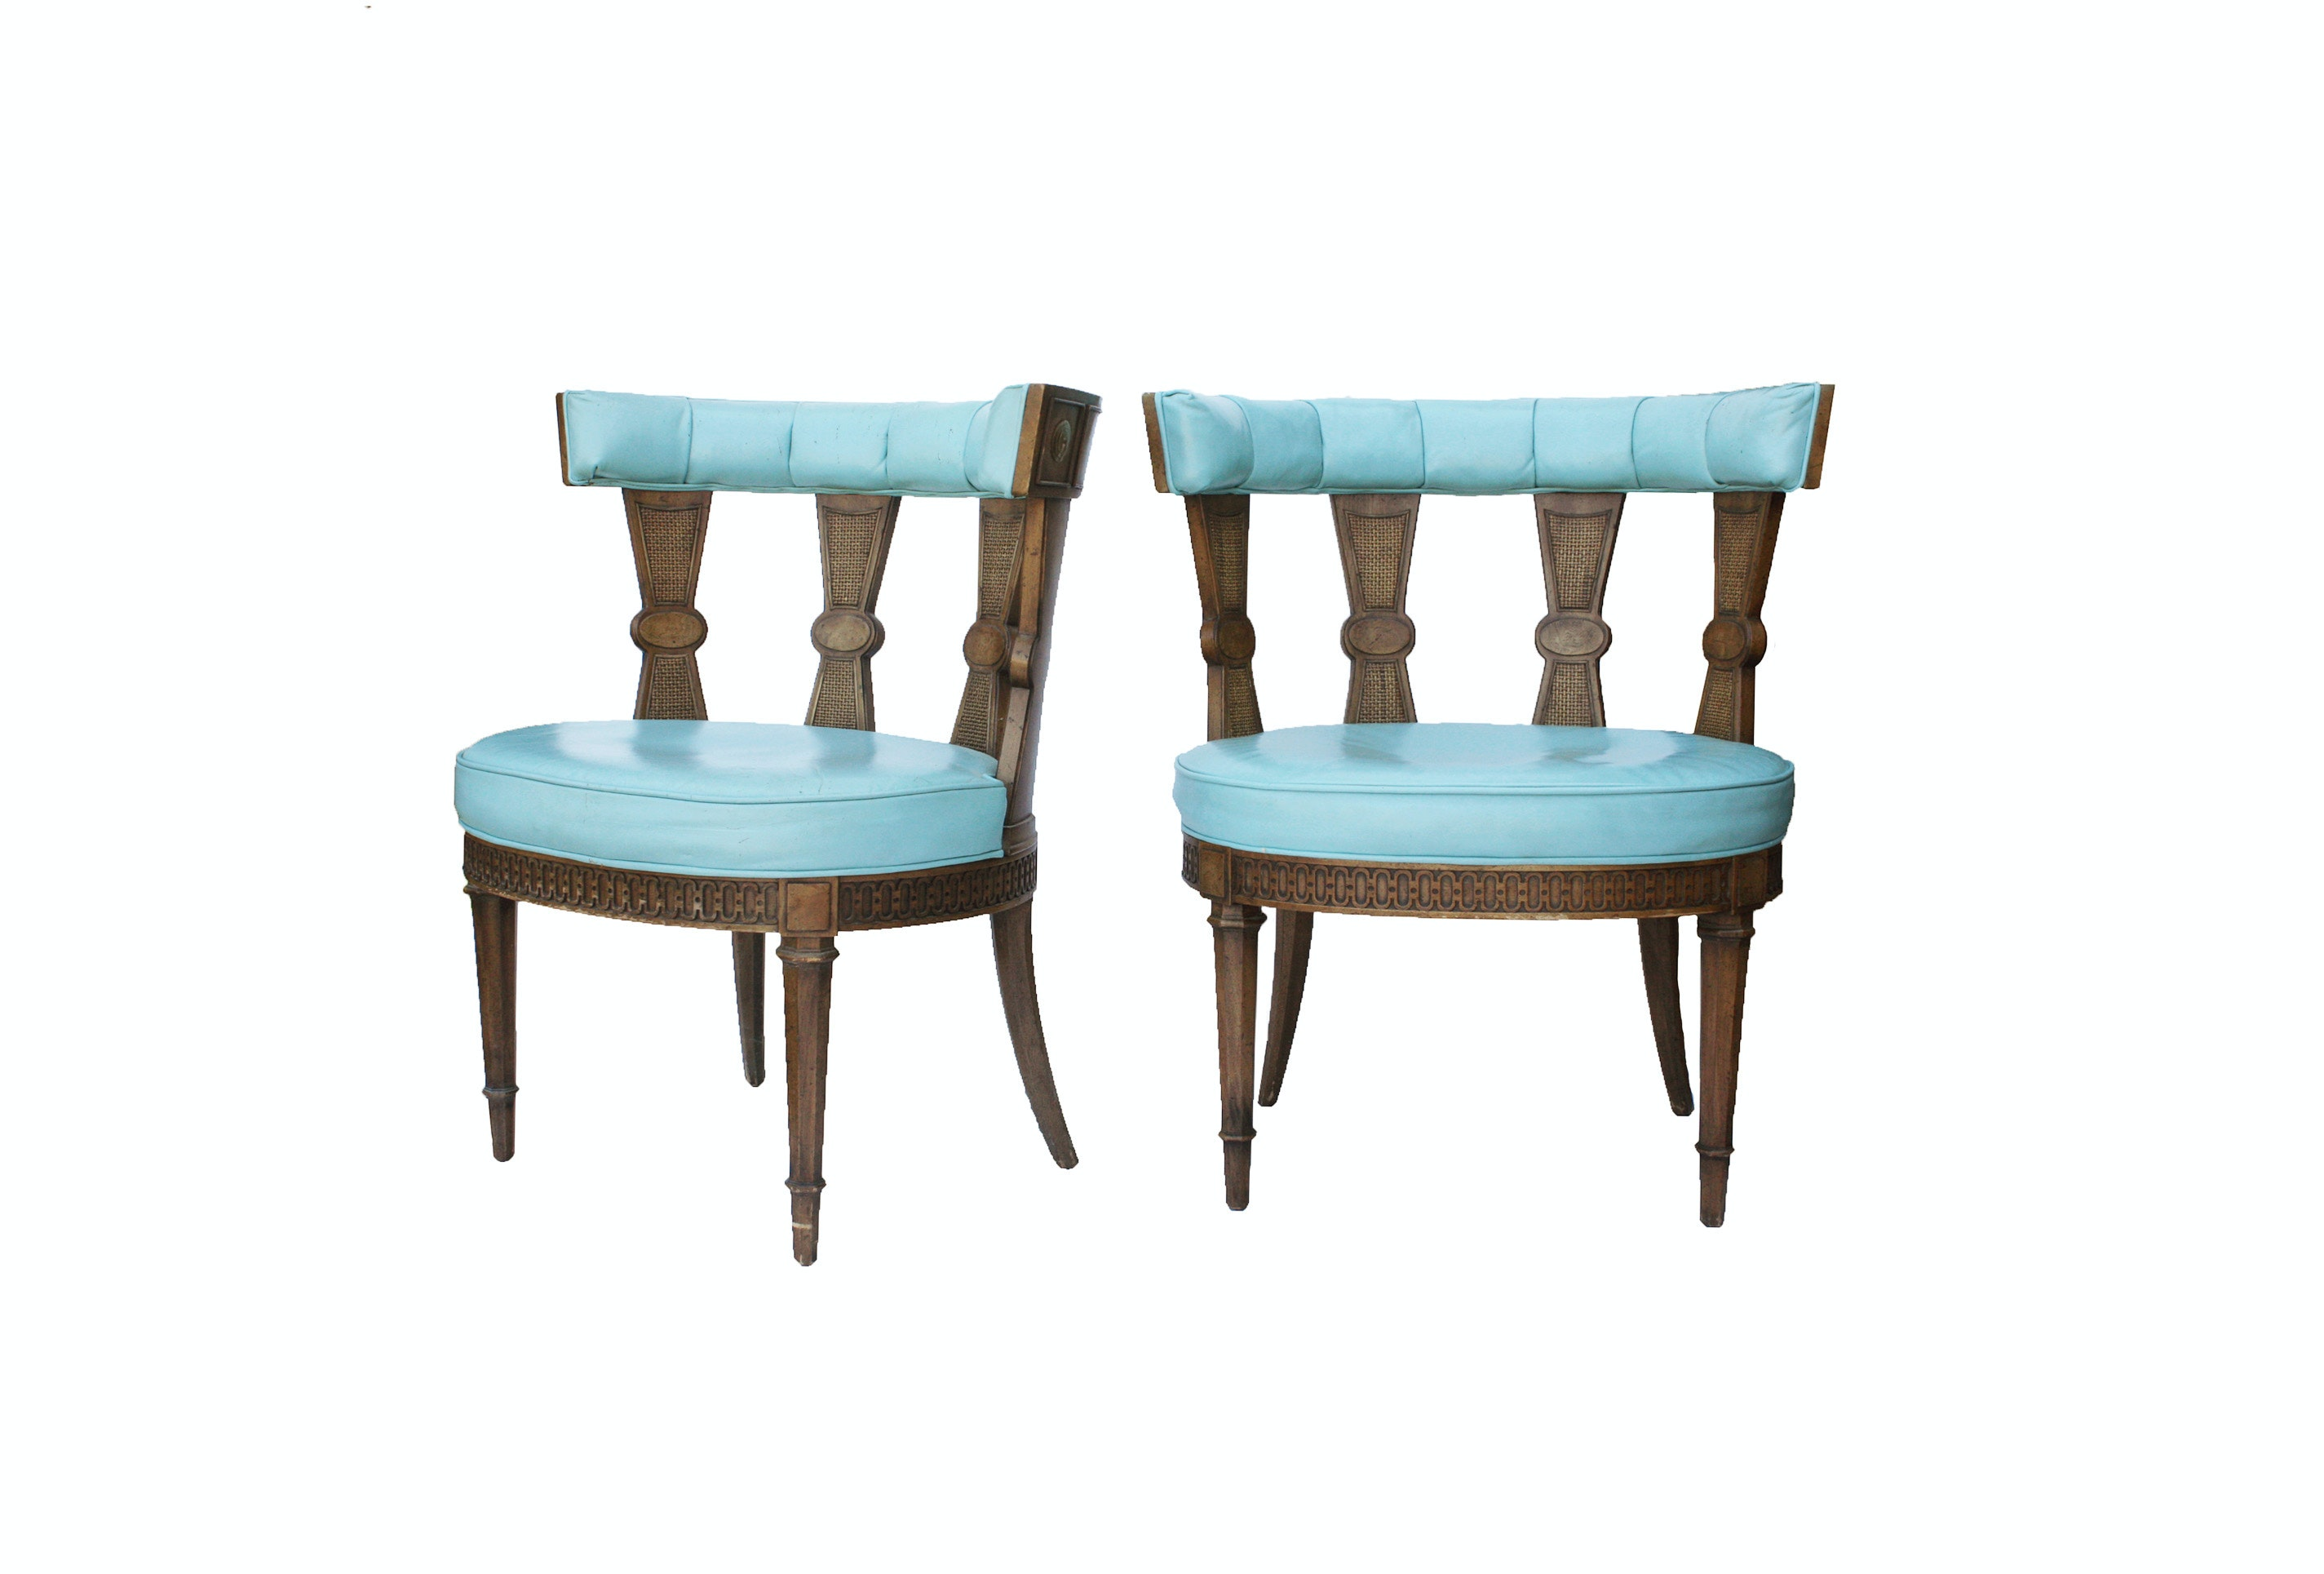 Pair of Vintage Louis XVI Style Chairs